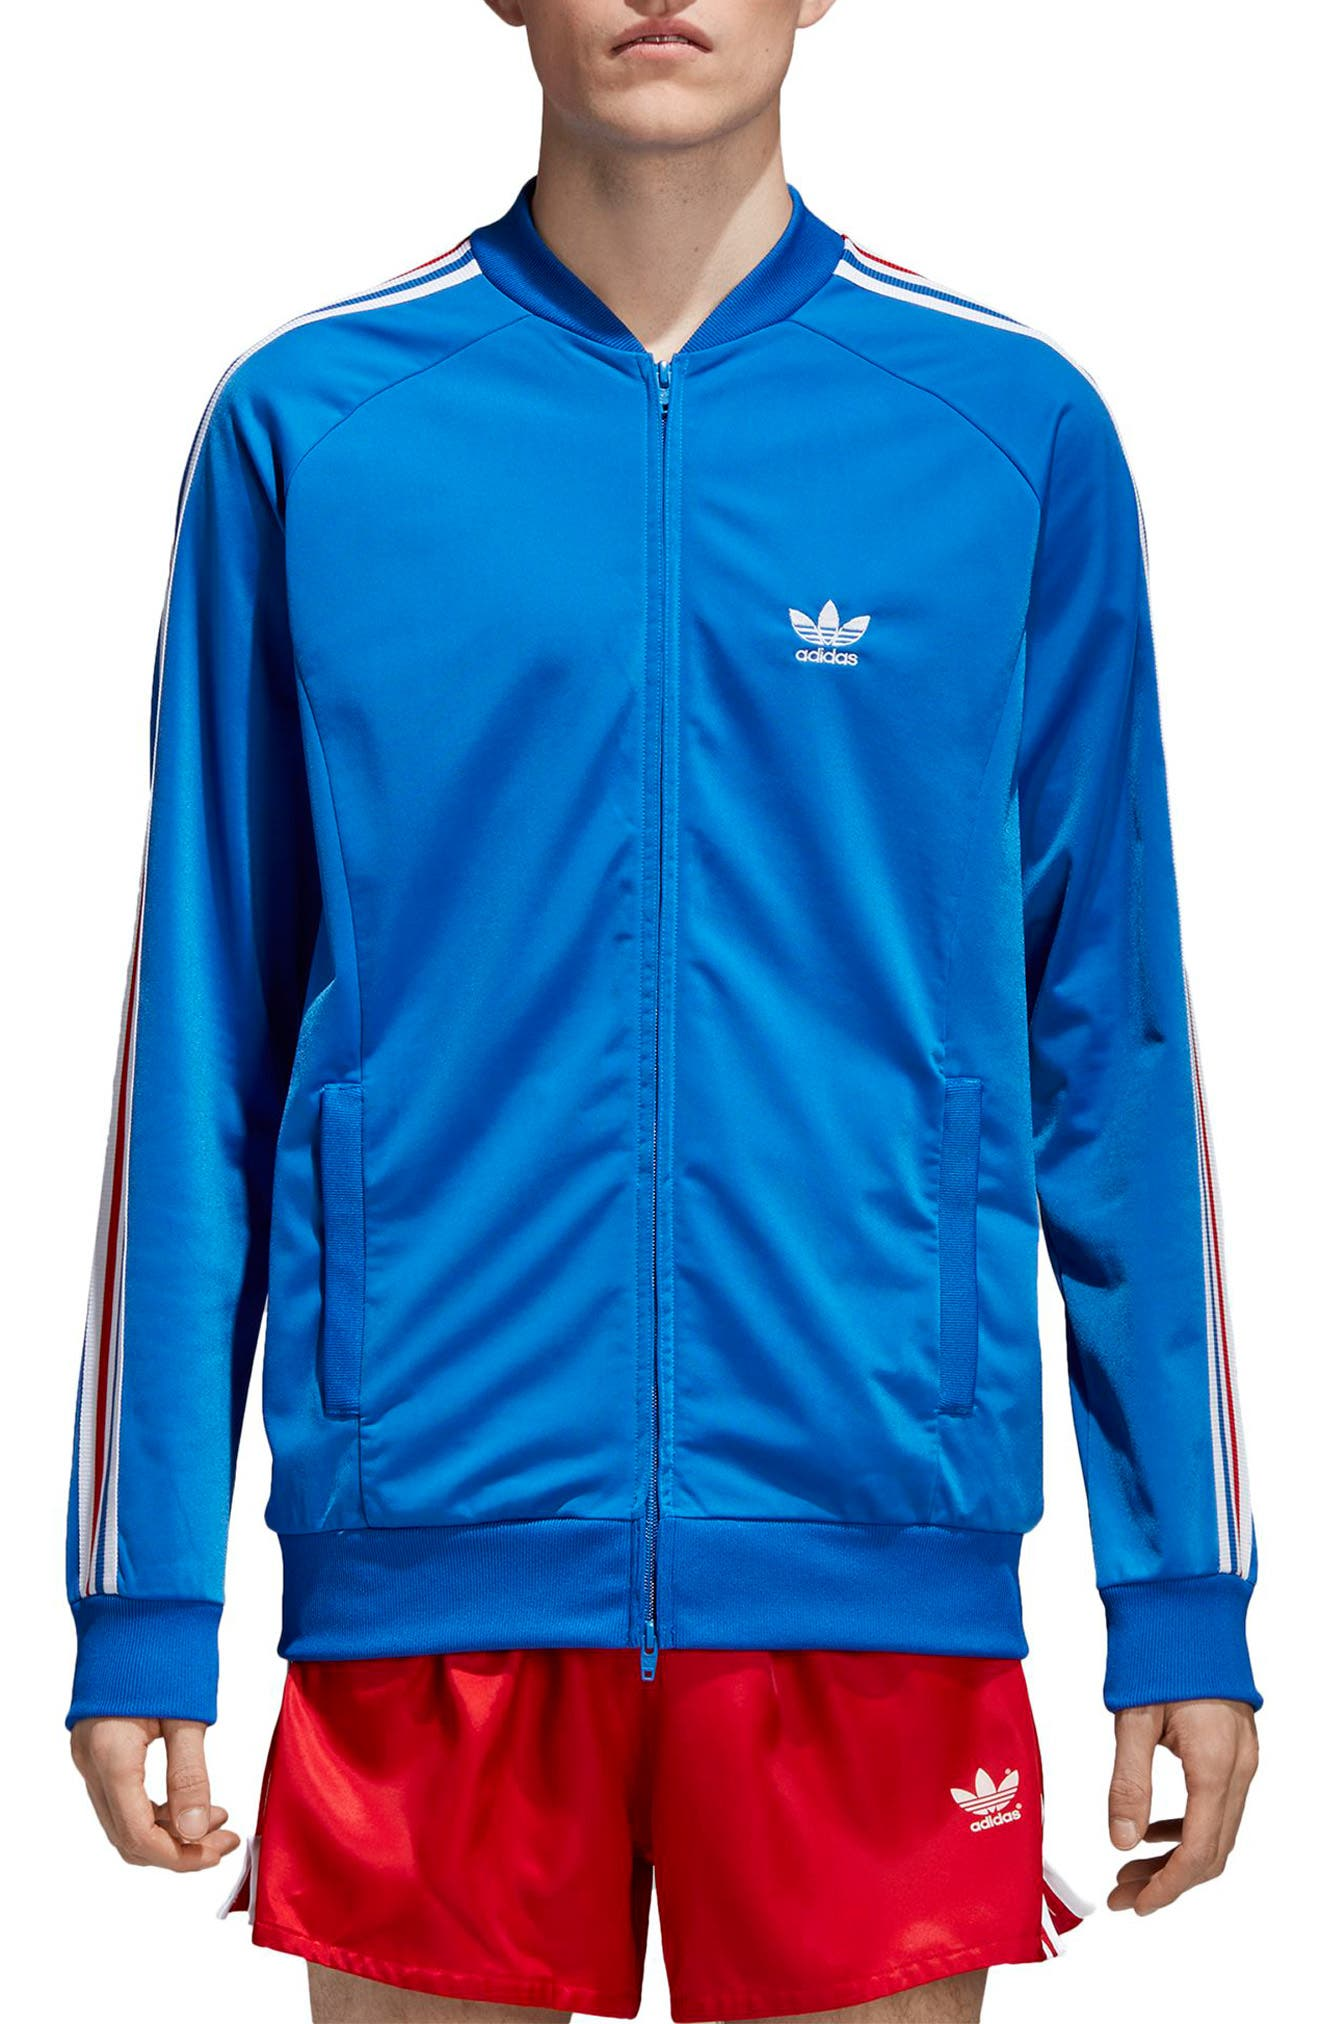 SST Track Jacket,                             Main thumbnail 1, color,                             435